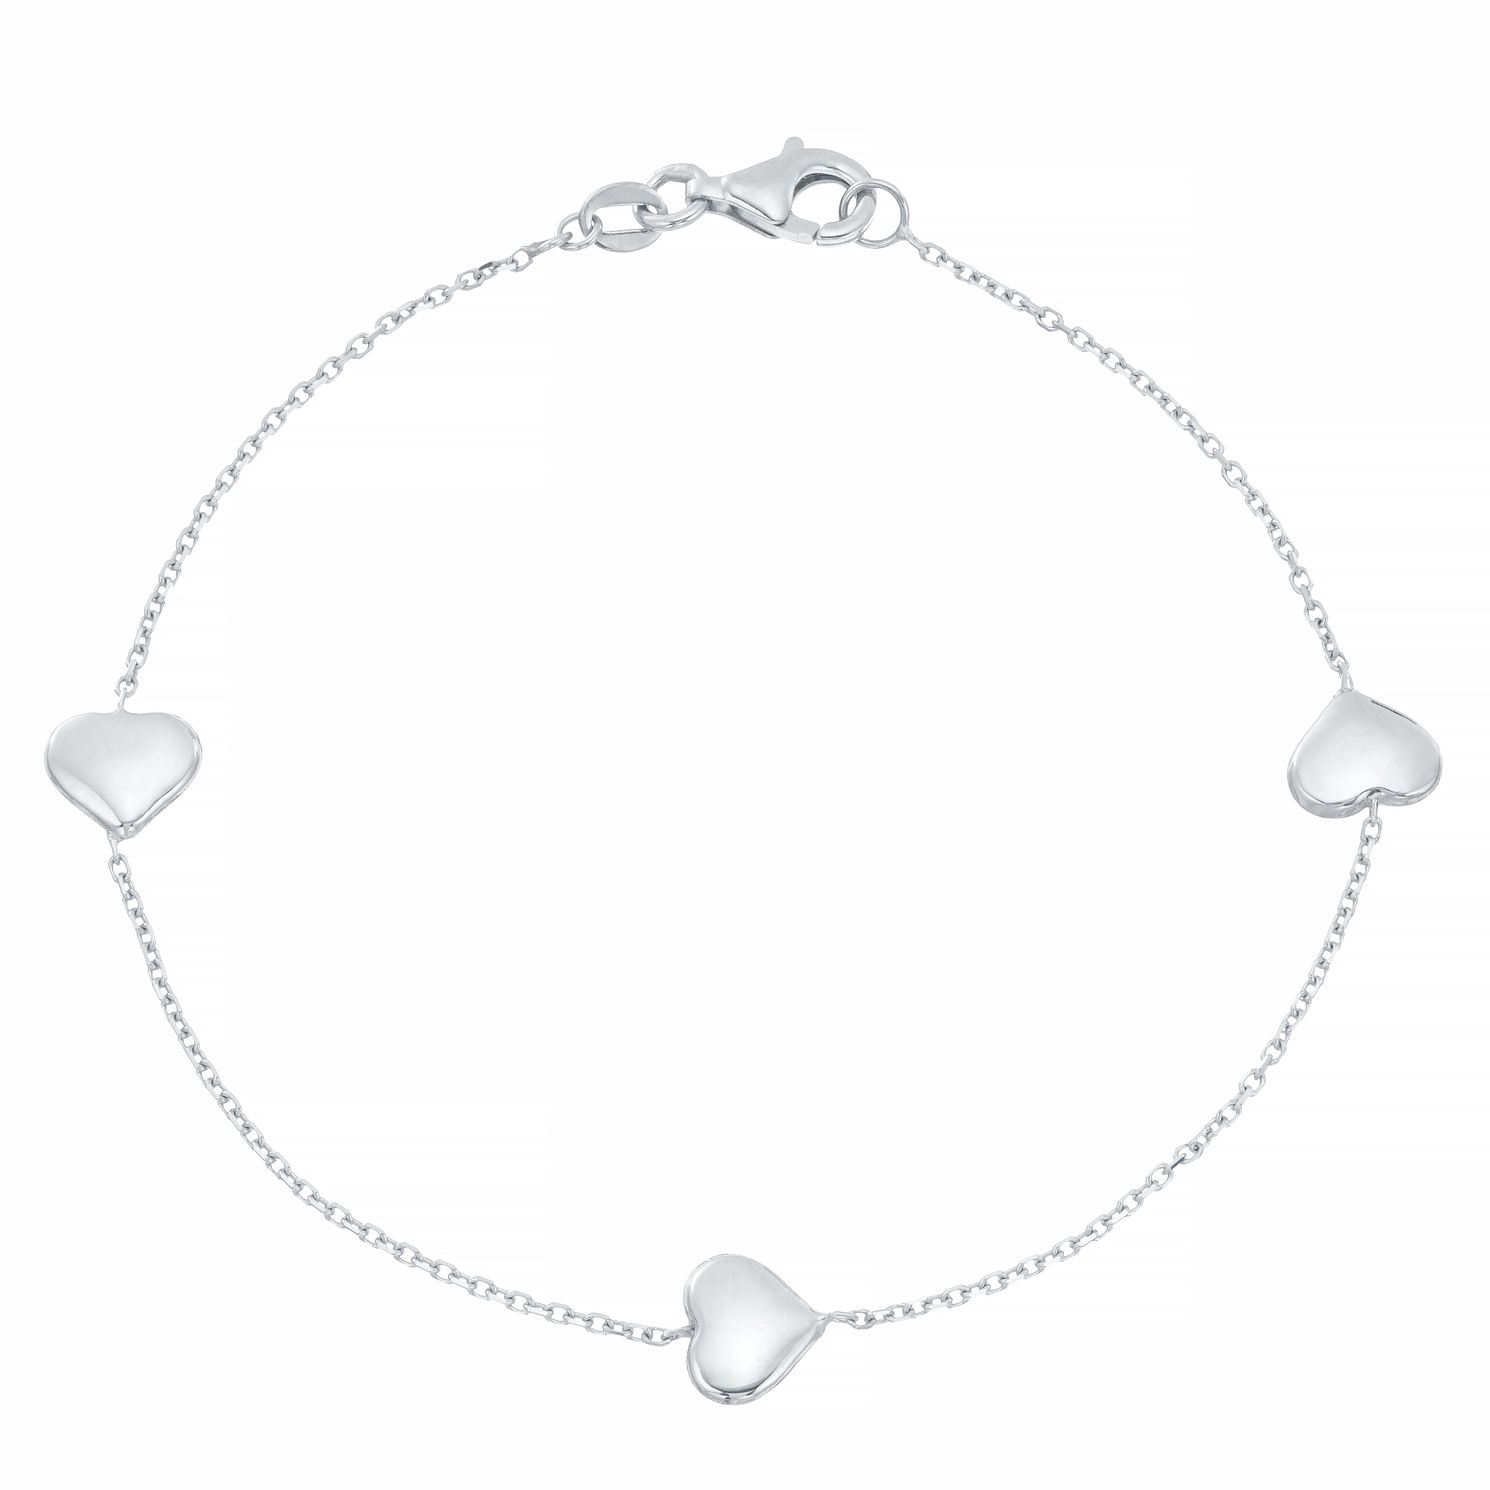 9ct White Gold Heart Station Bracelet - Product number 4058194